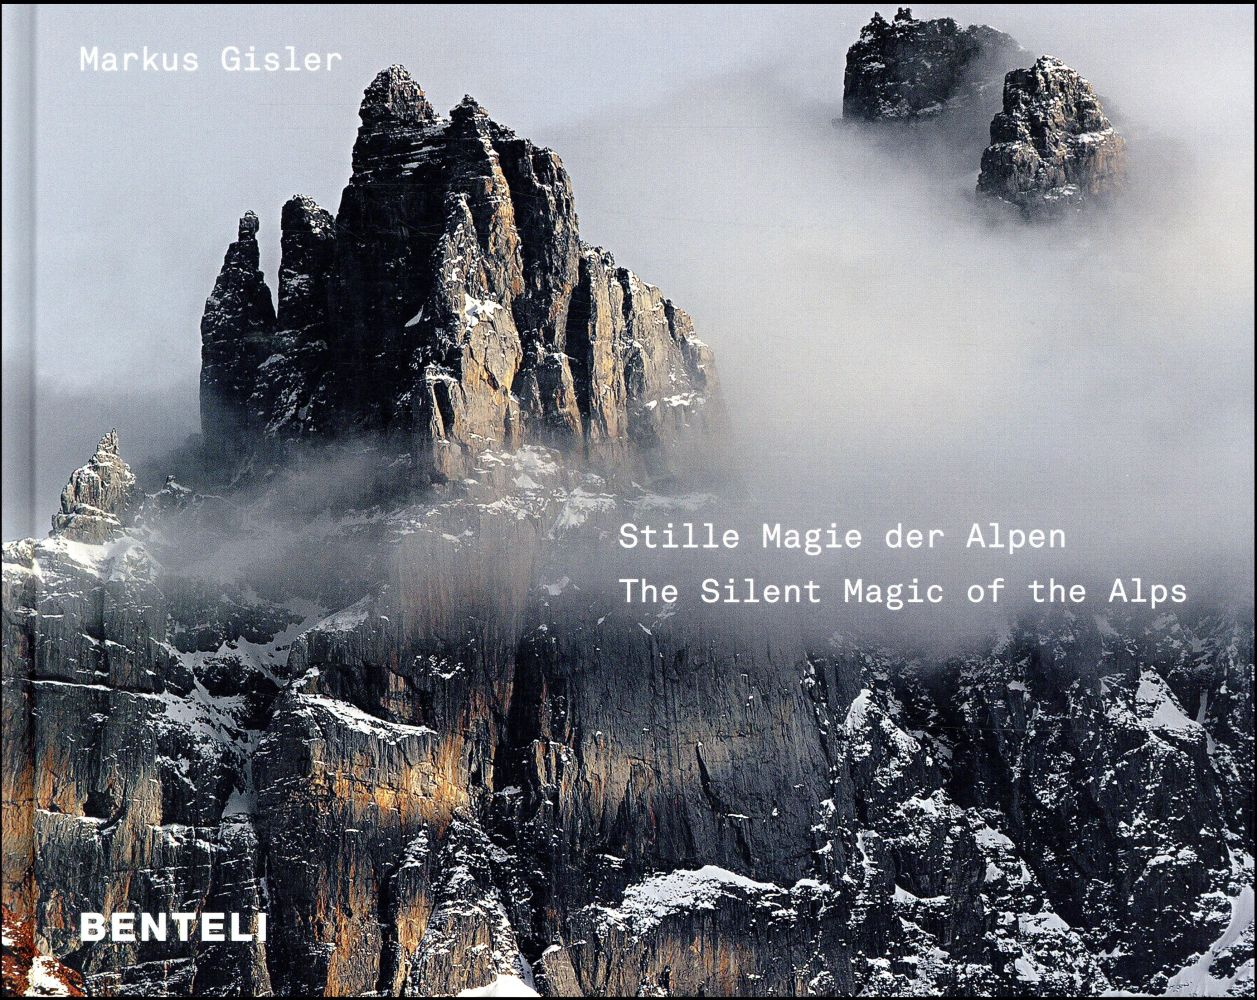 The Alps ; compelling silence